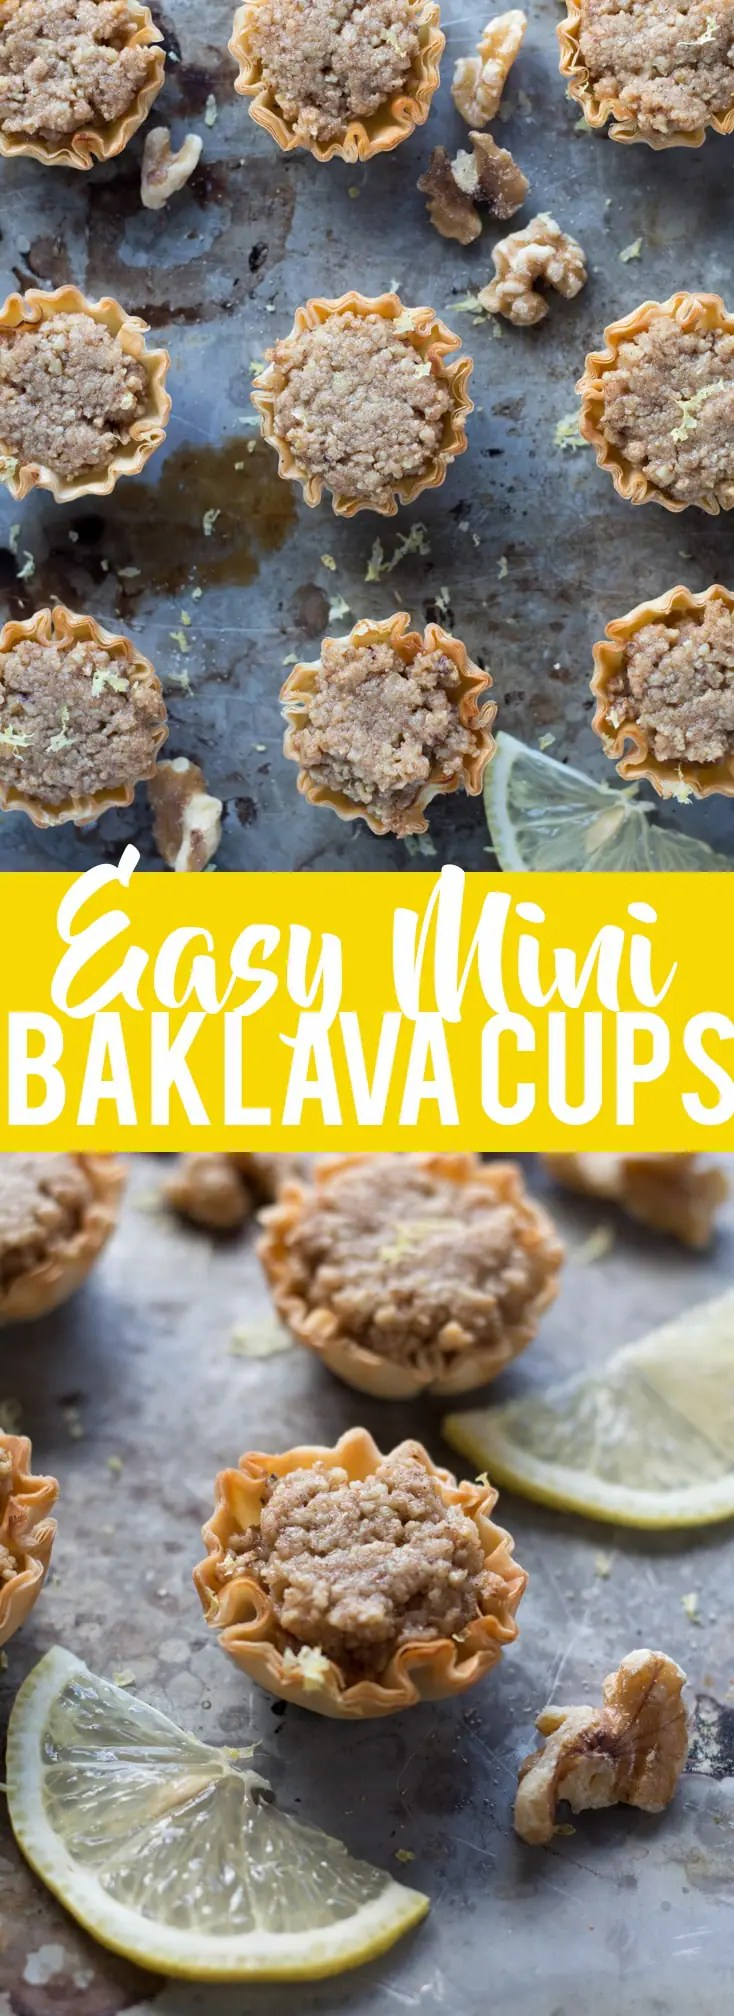 These Mini Baklava Cups are a cute, bite sized dessert with all the flavors of baklava - but without all the work! Only a few ingredients and 20 minutes will give you these perfect mini desserts!